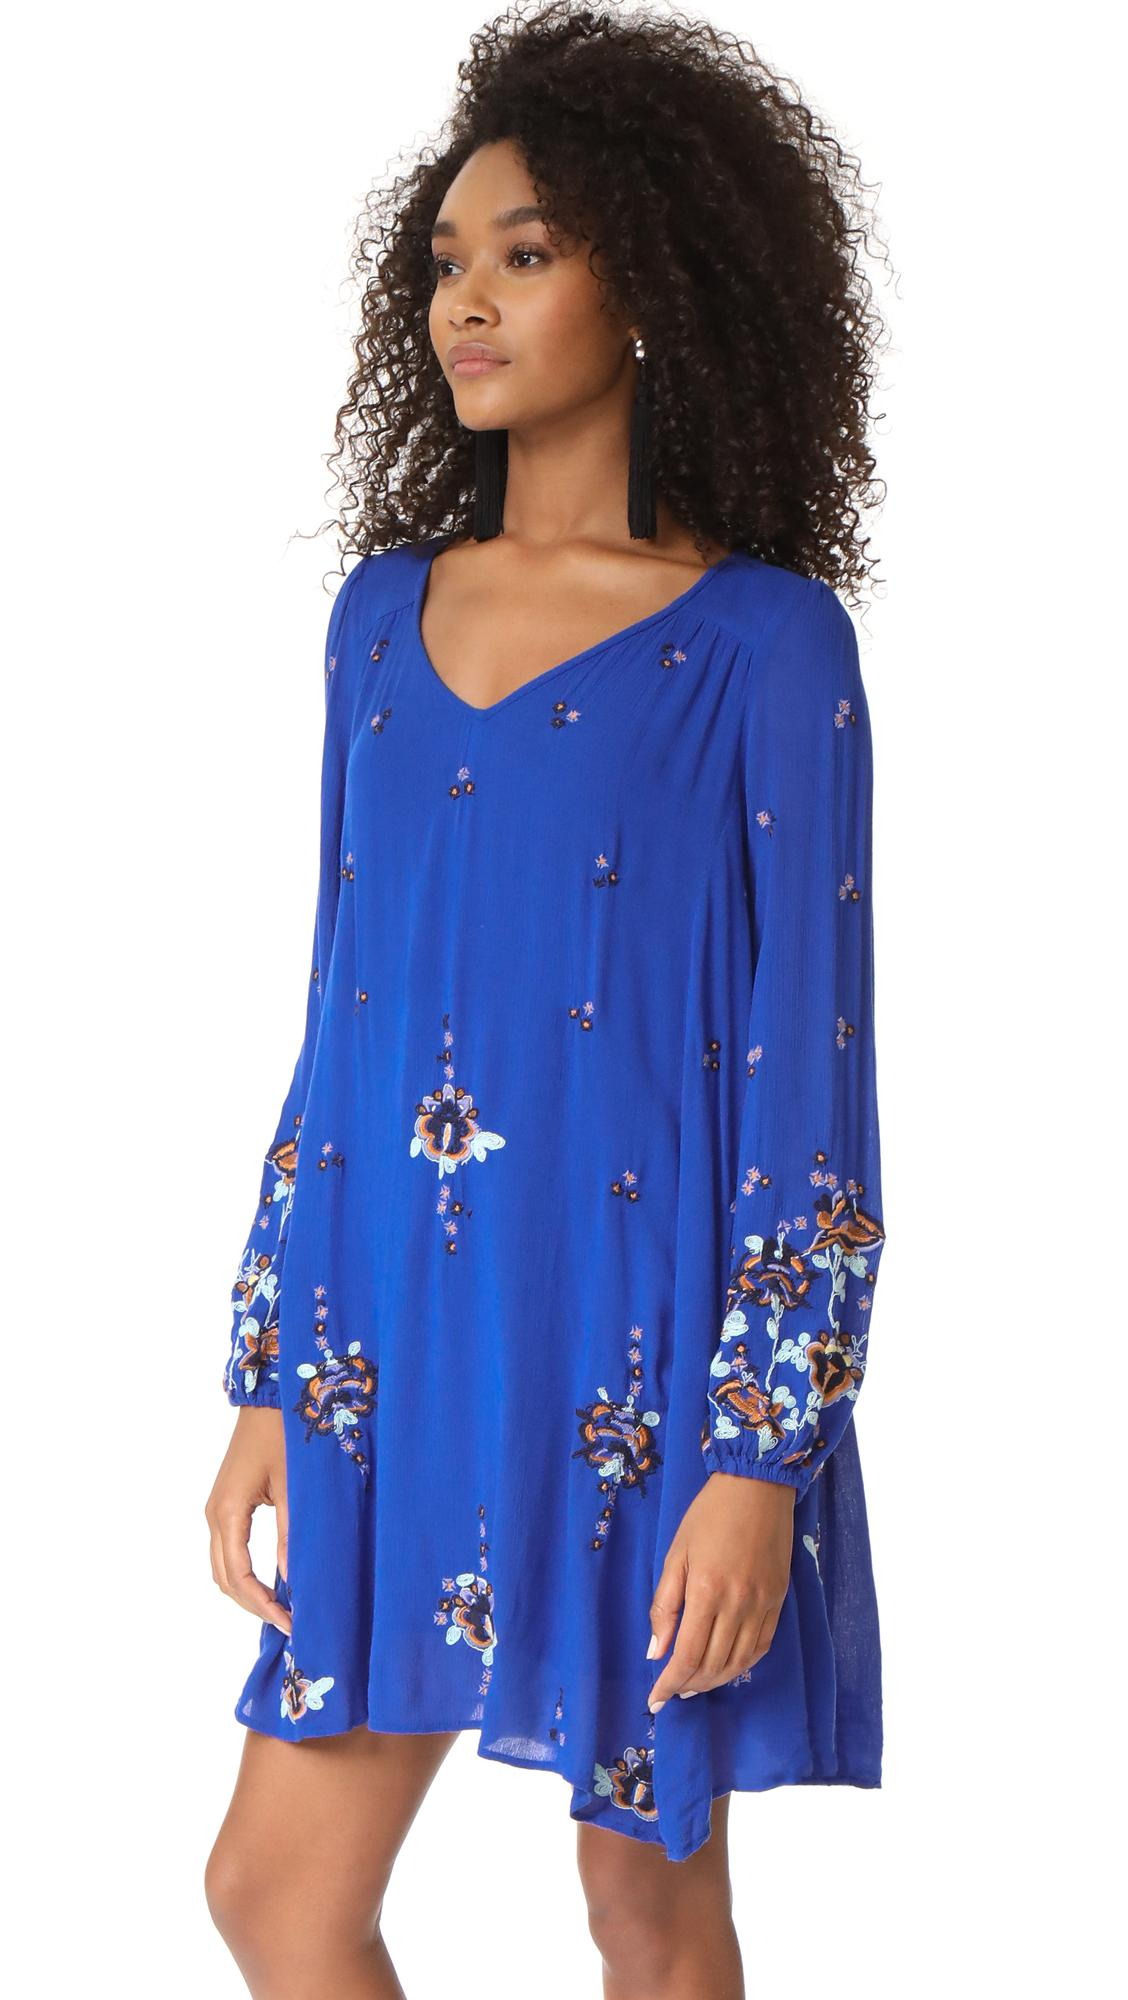 576f952e7bb7 Free People Oxford Embroidered Mini Dress in Blue - Lyst